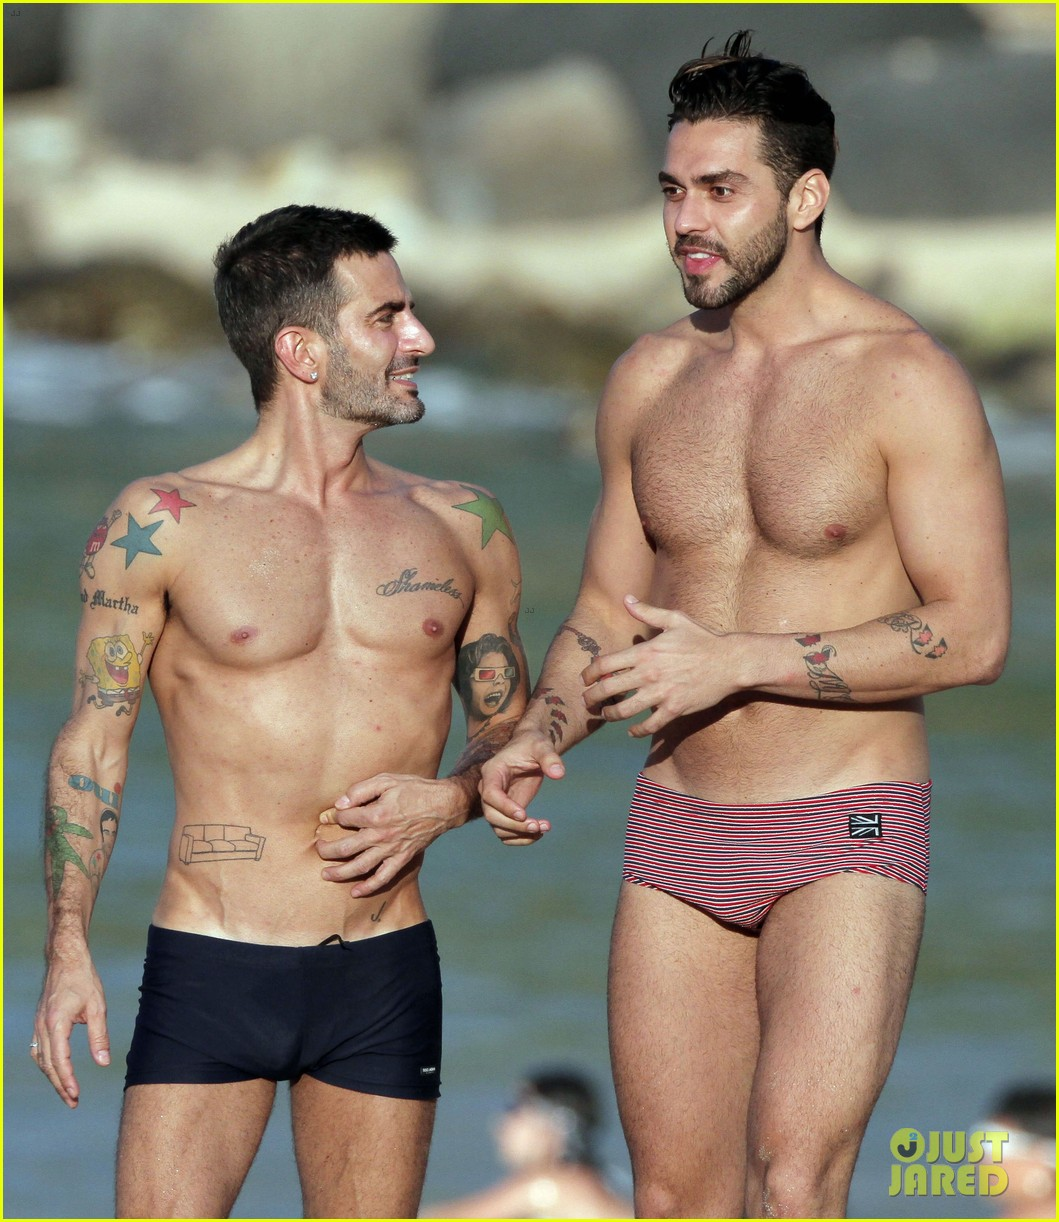 30minute free gay download